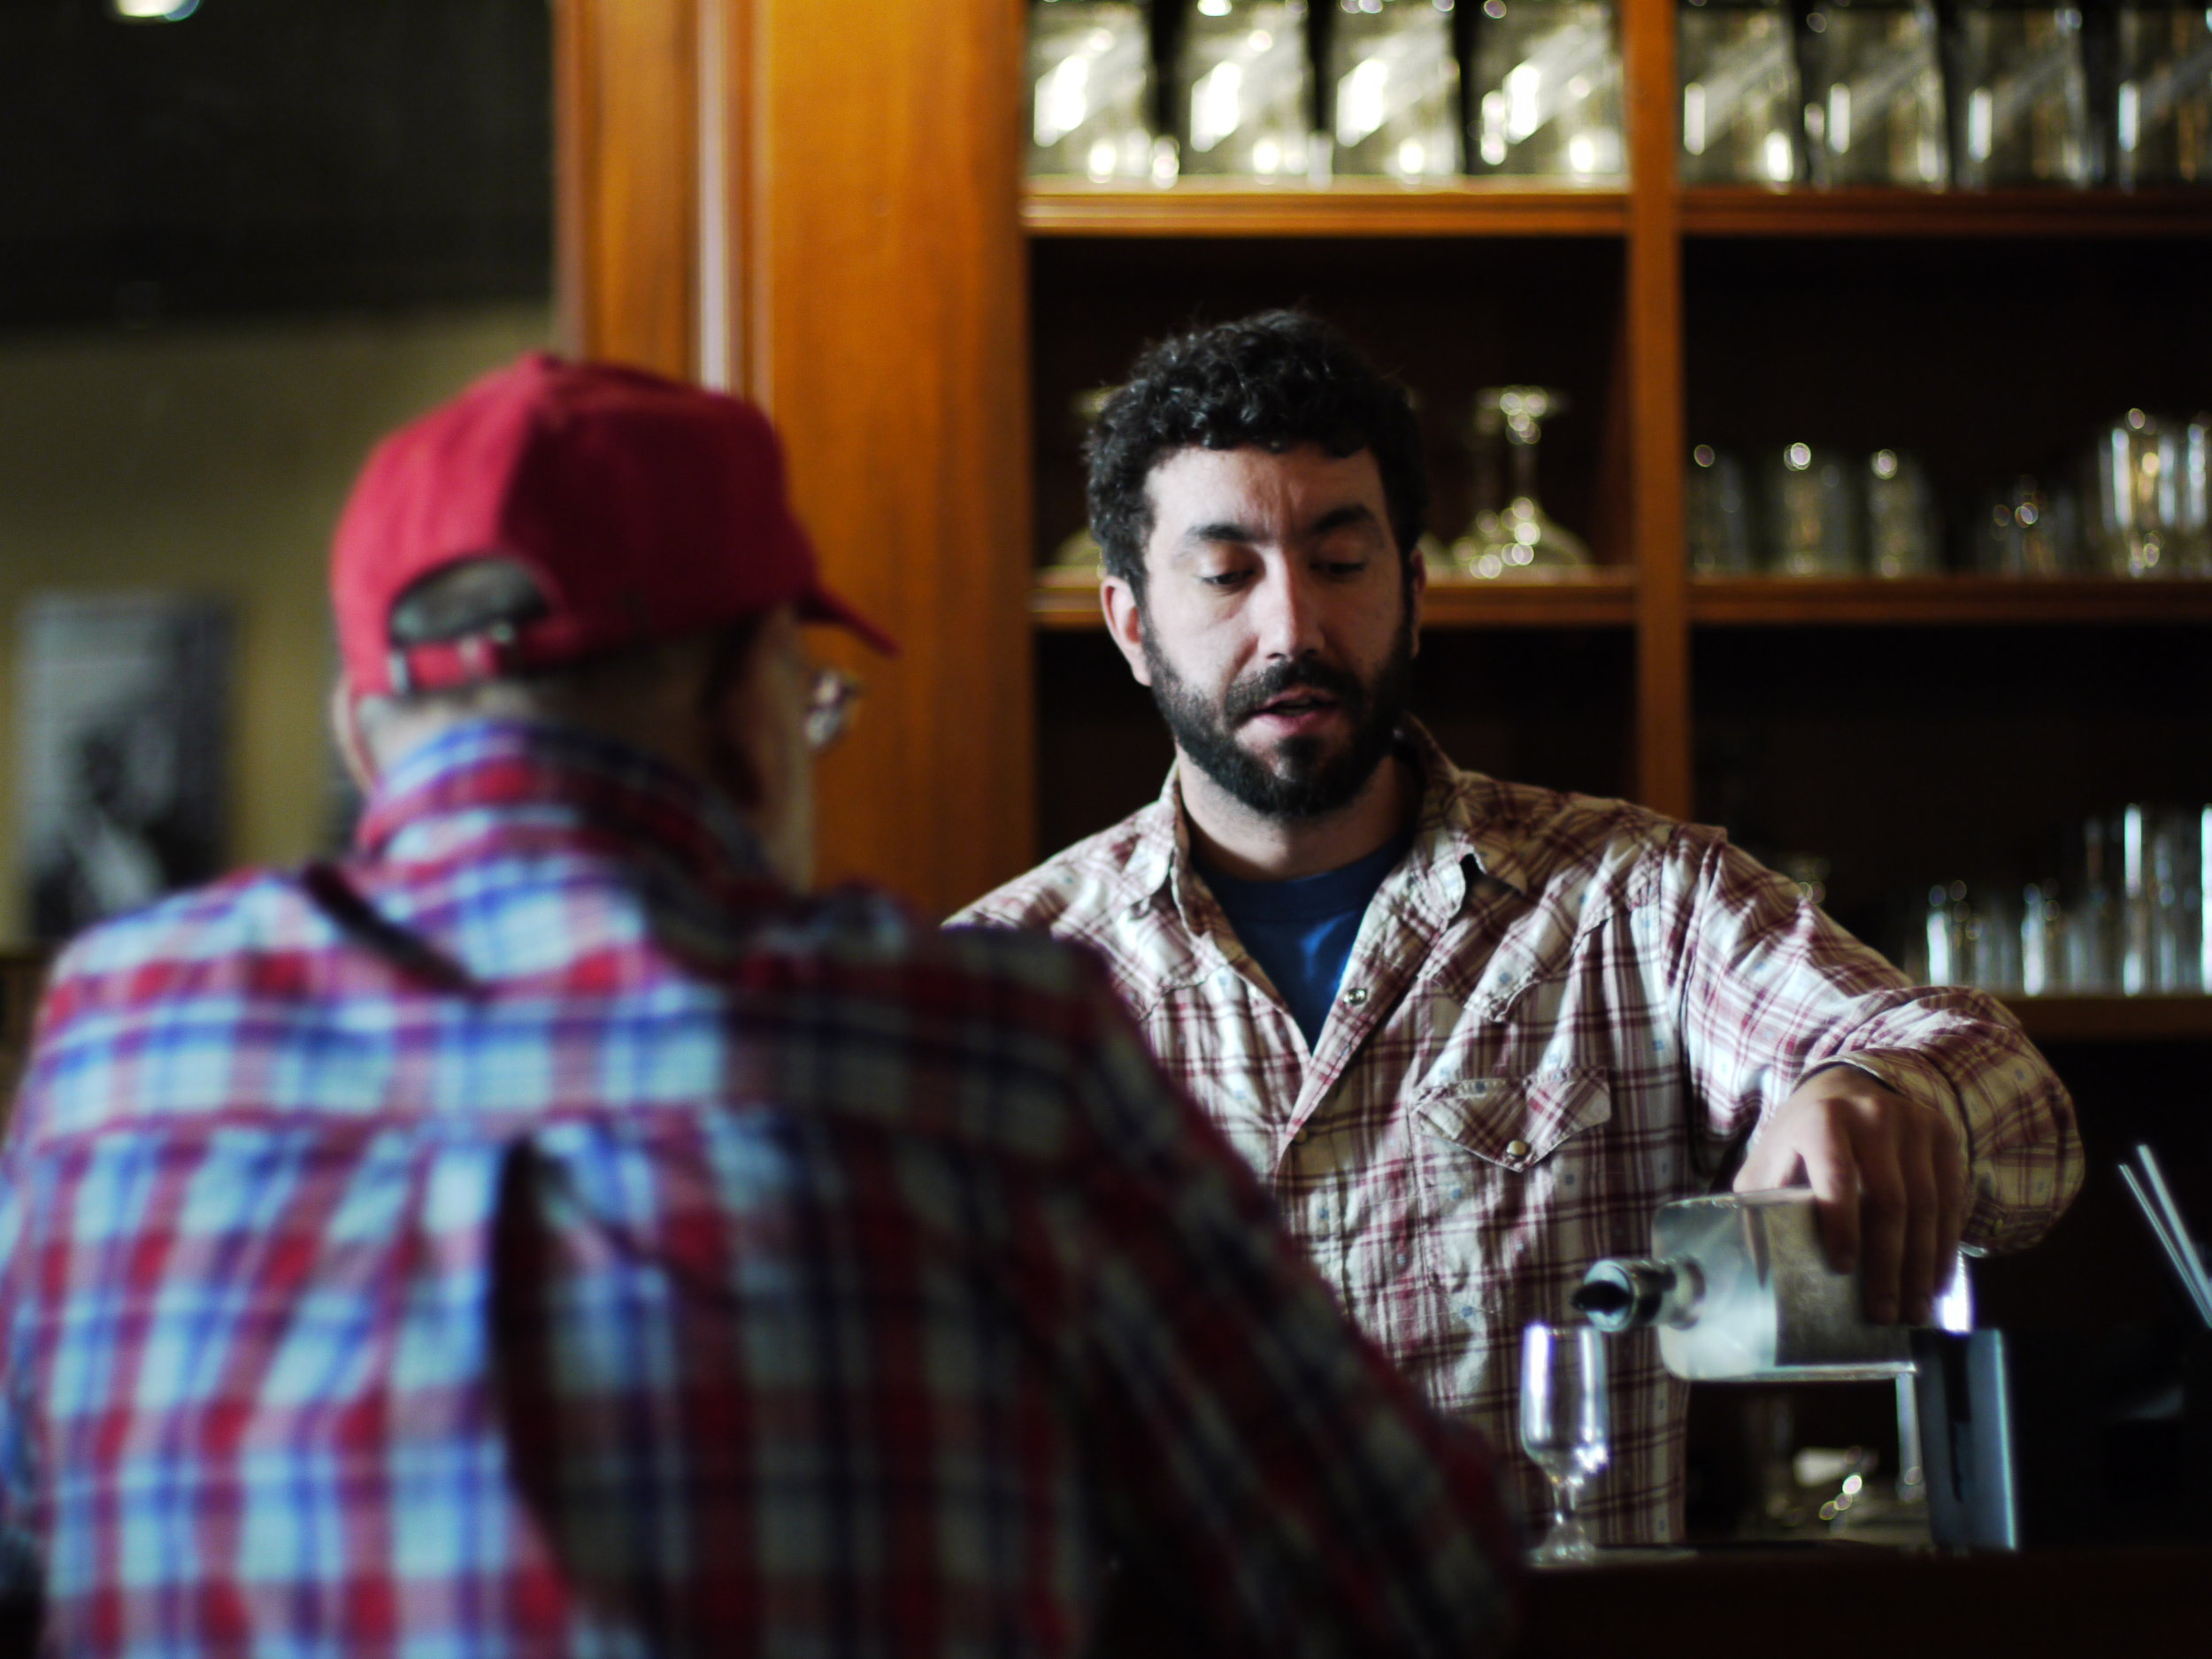 Mike pours a sample of craft spirits at Montgomery micro-distillery